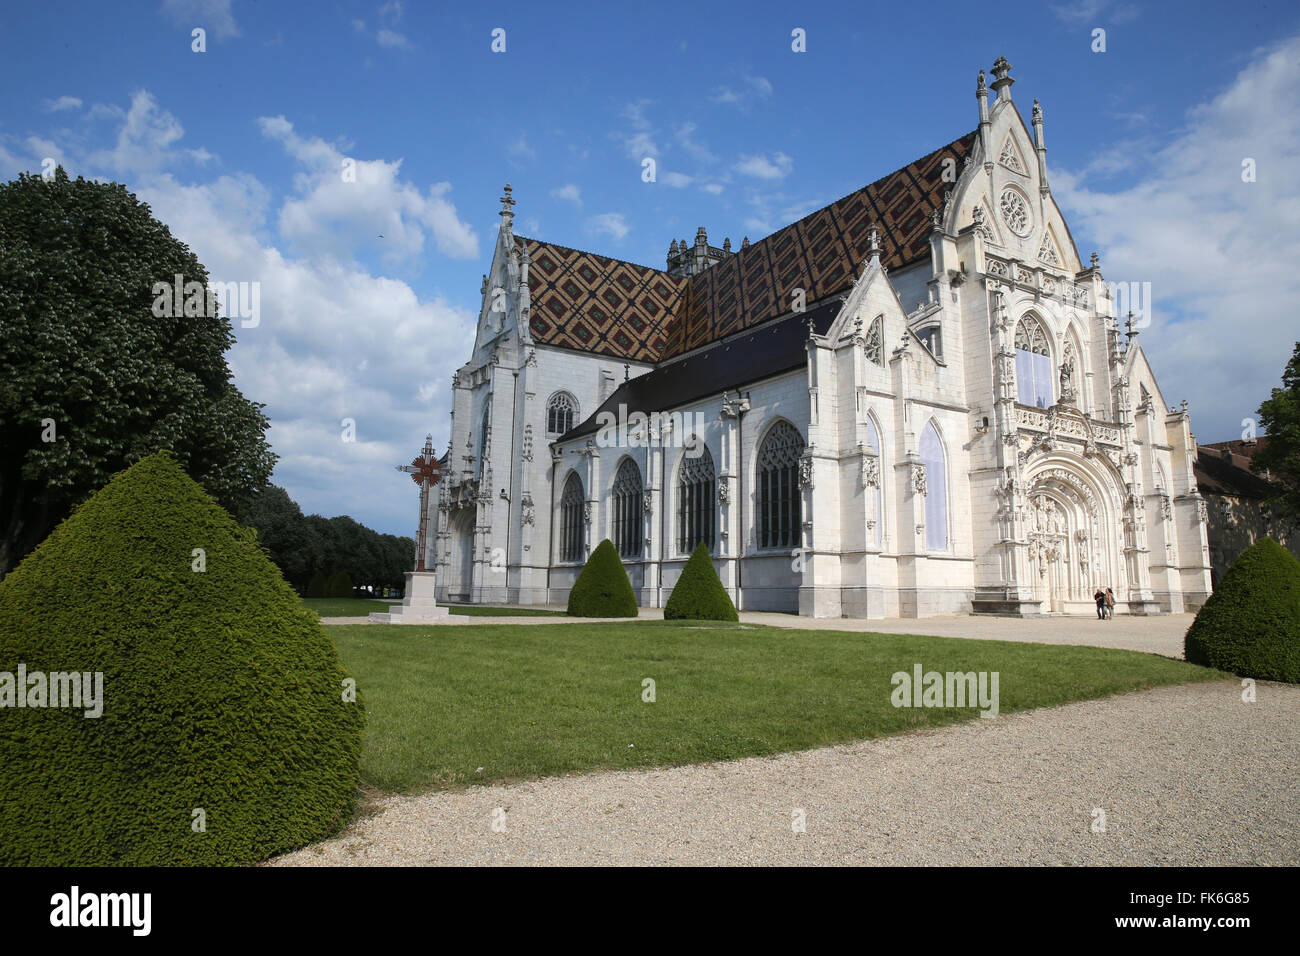 The Royal Monastery of Brou, the church is a masterpiece of the Flamboyant Gothic style, Bourge-en-Bresse, Ain, - Stock Image